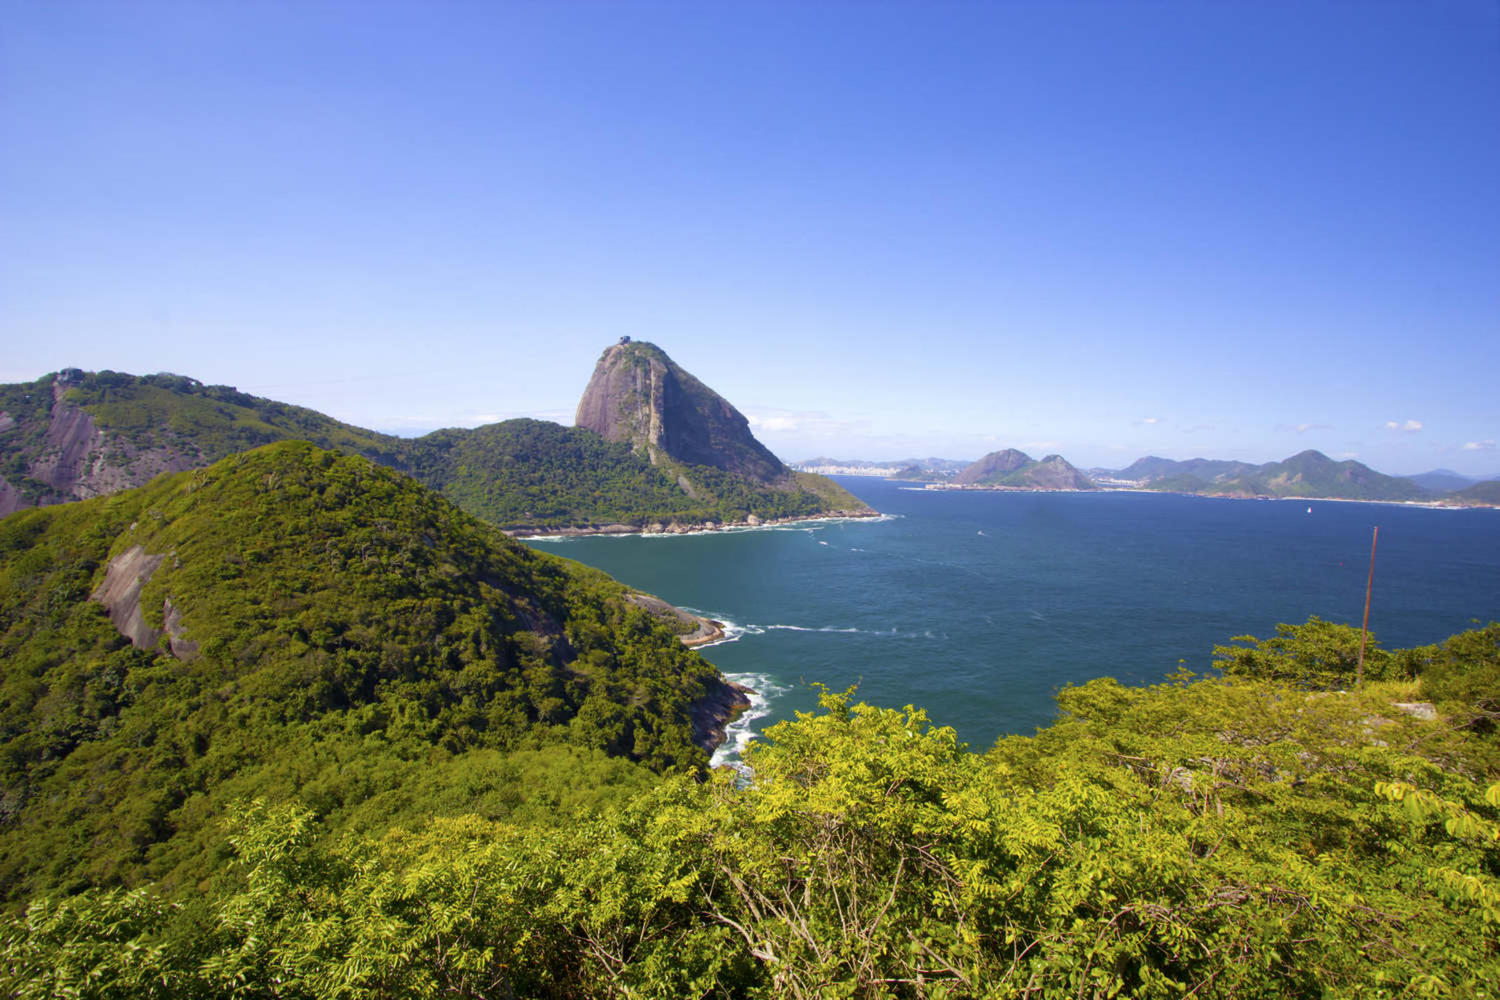 Stunning view of the Sugar loaf in Rio de Janeiro